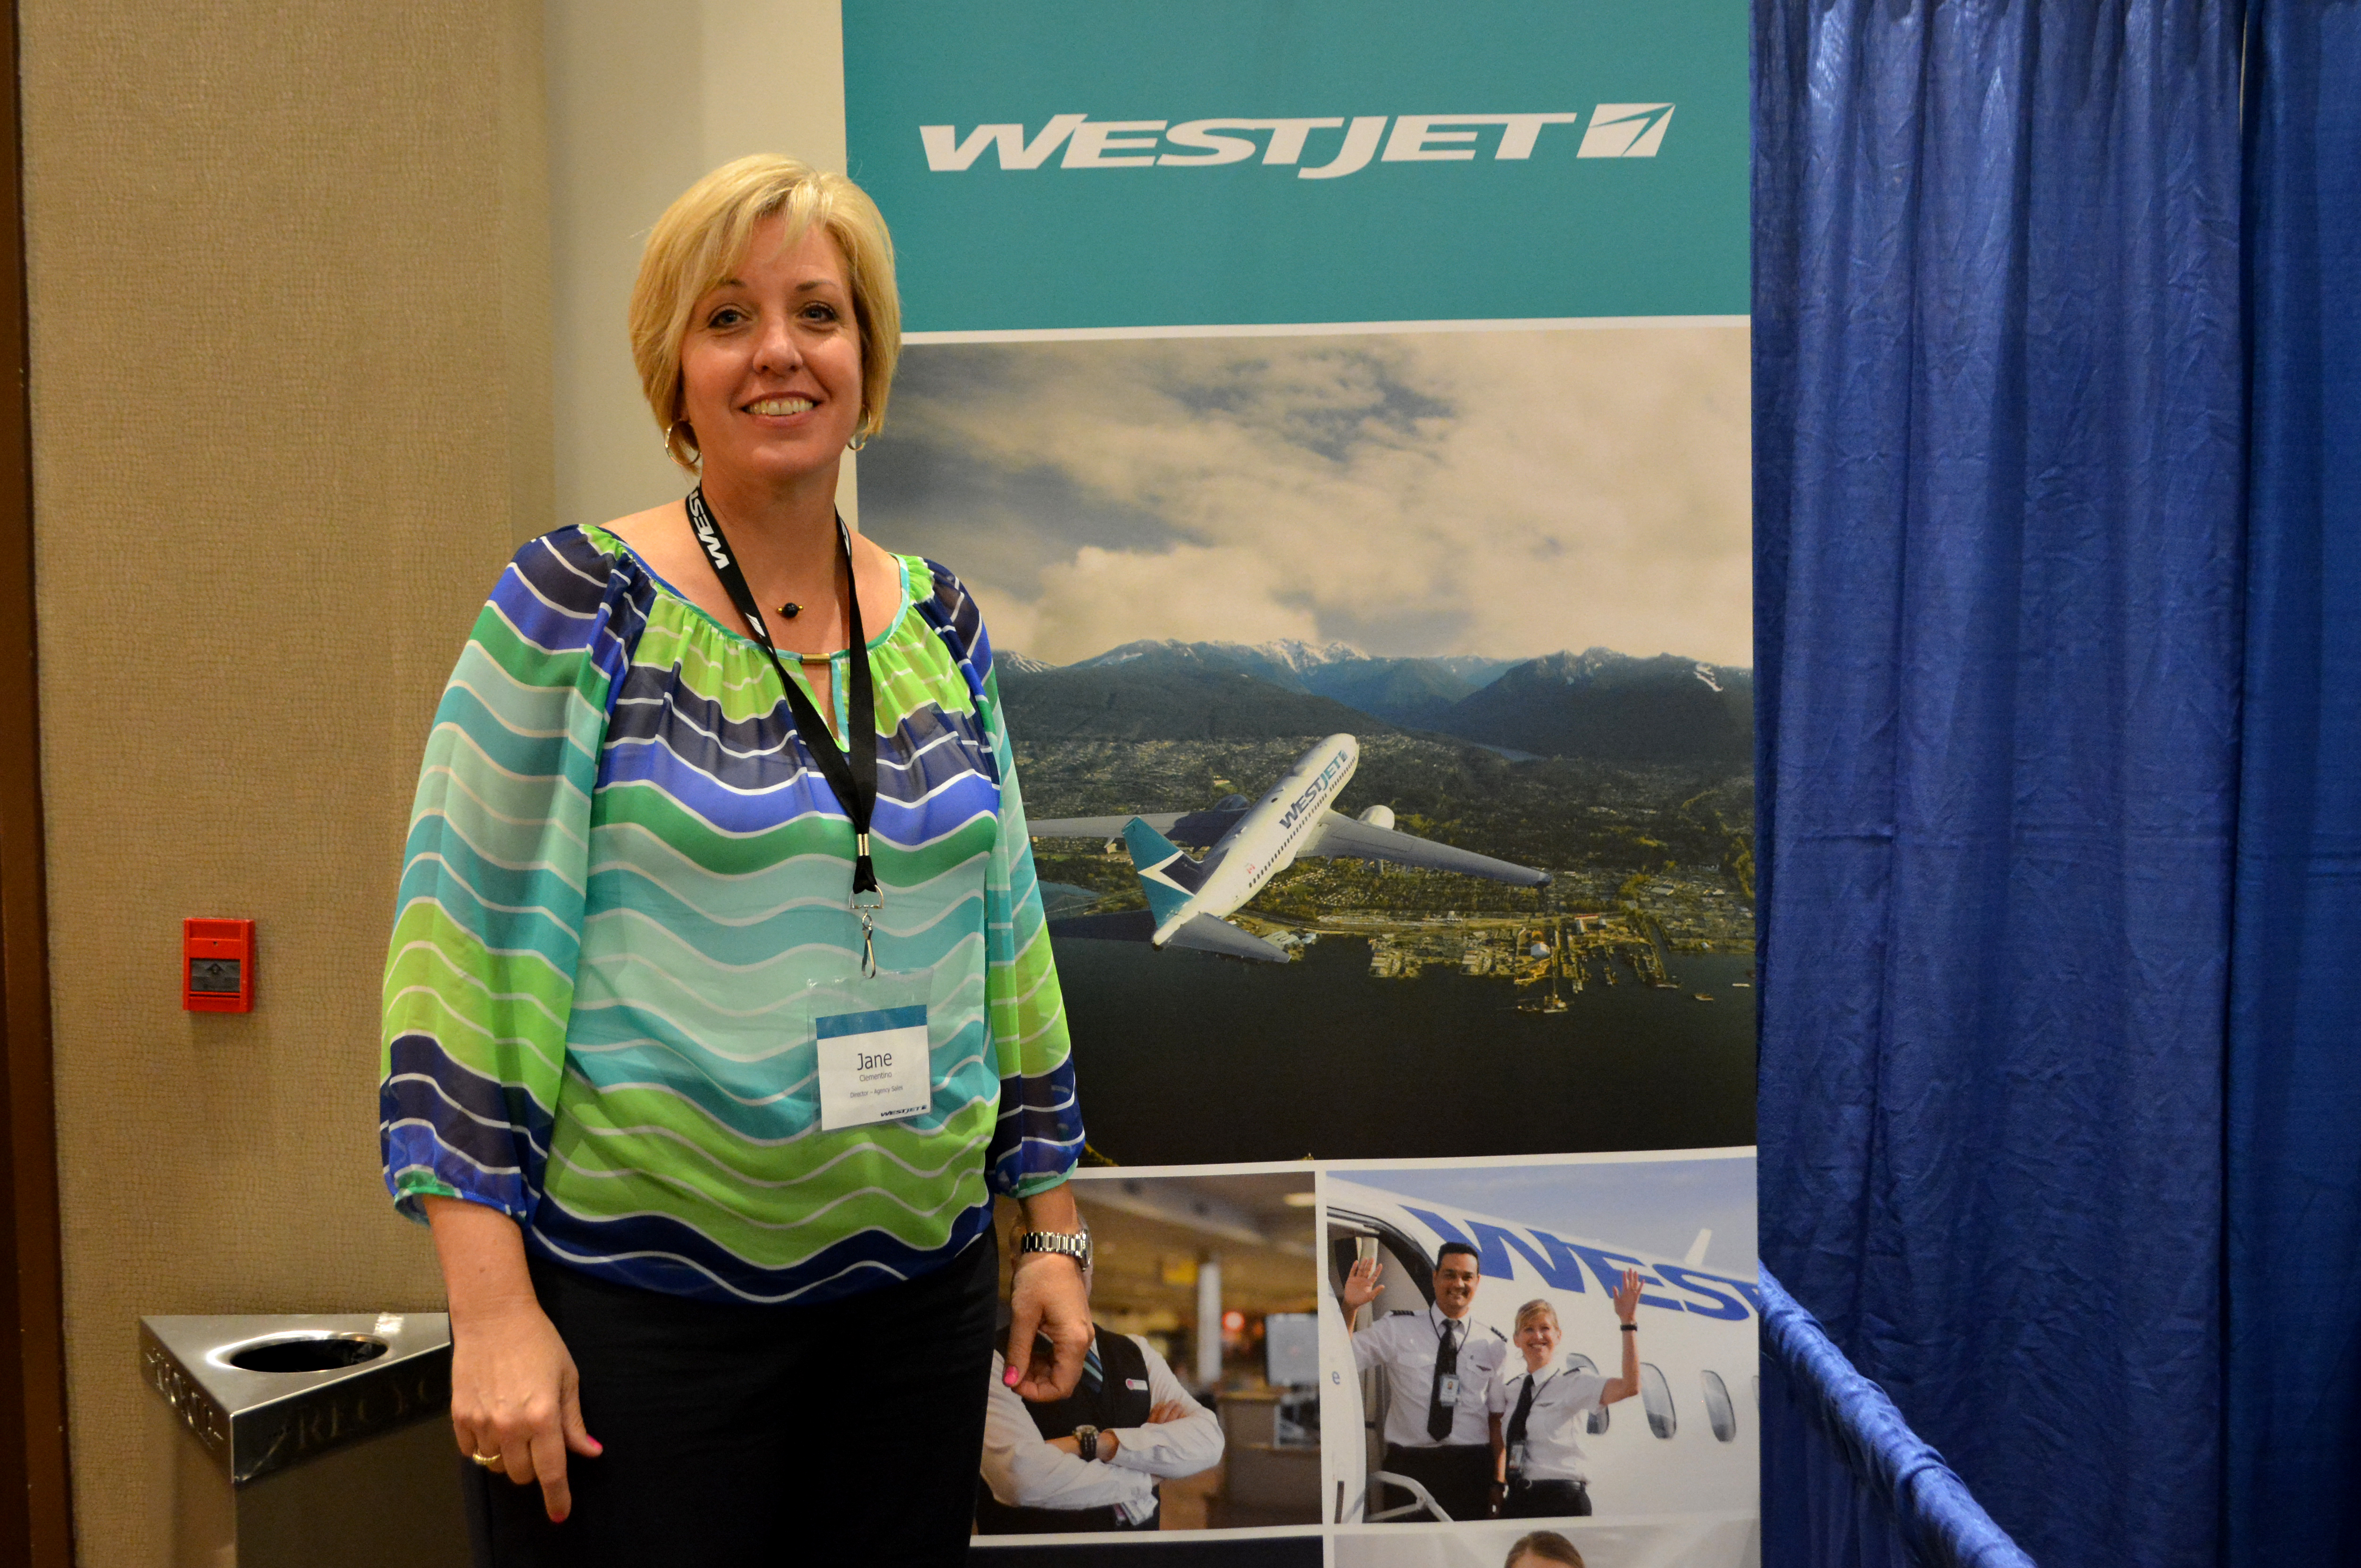 WestJet celebrates agents at trade expo